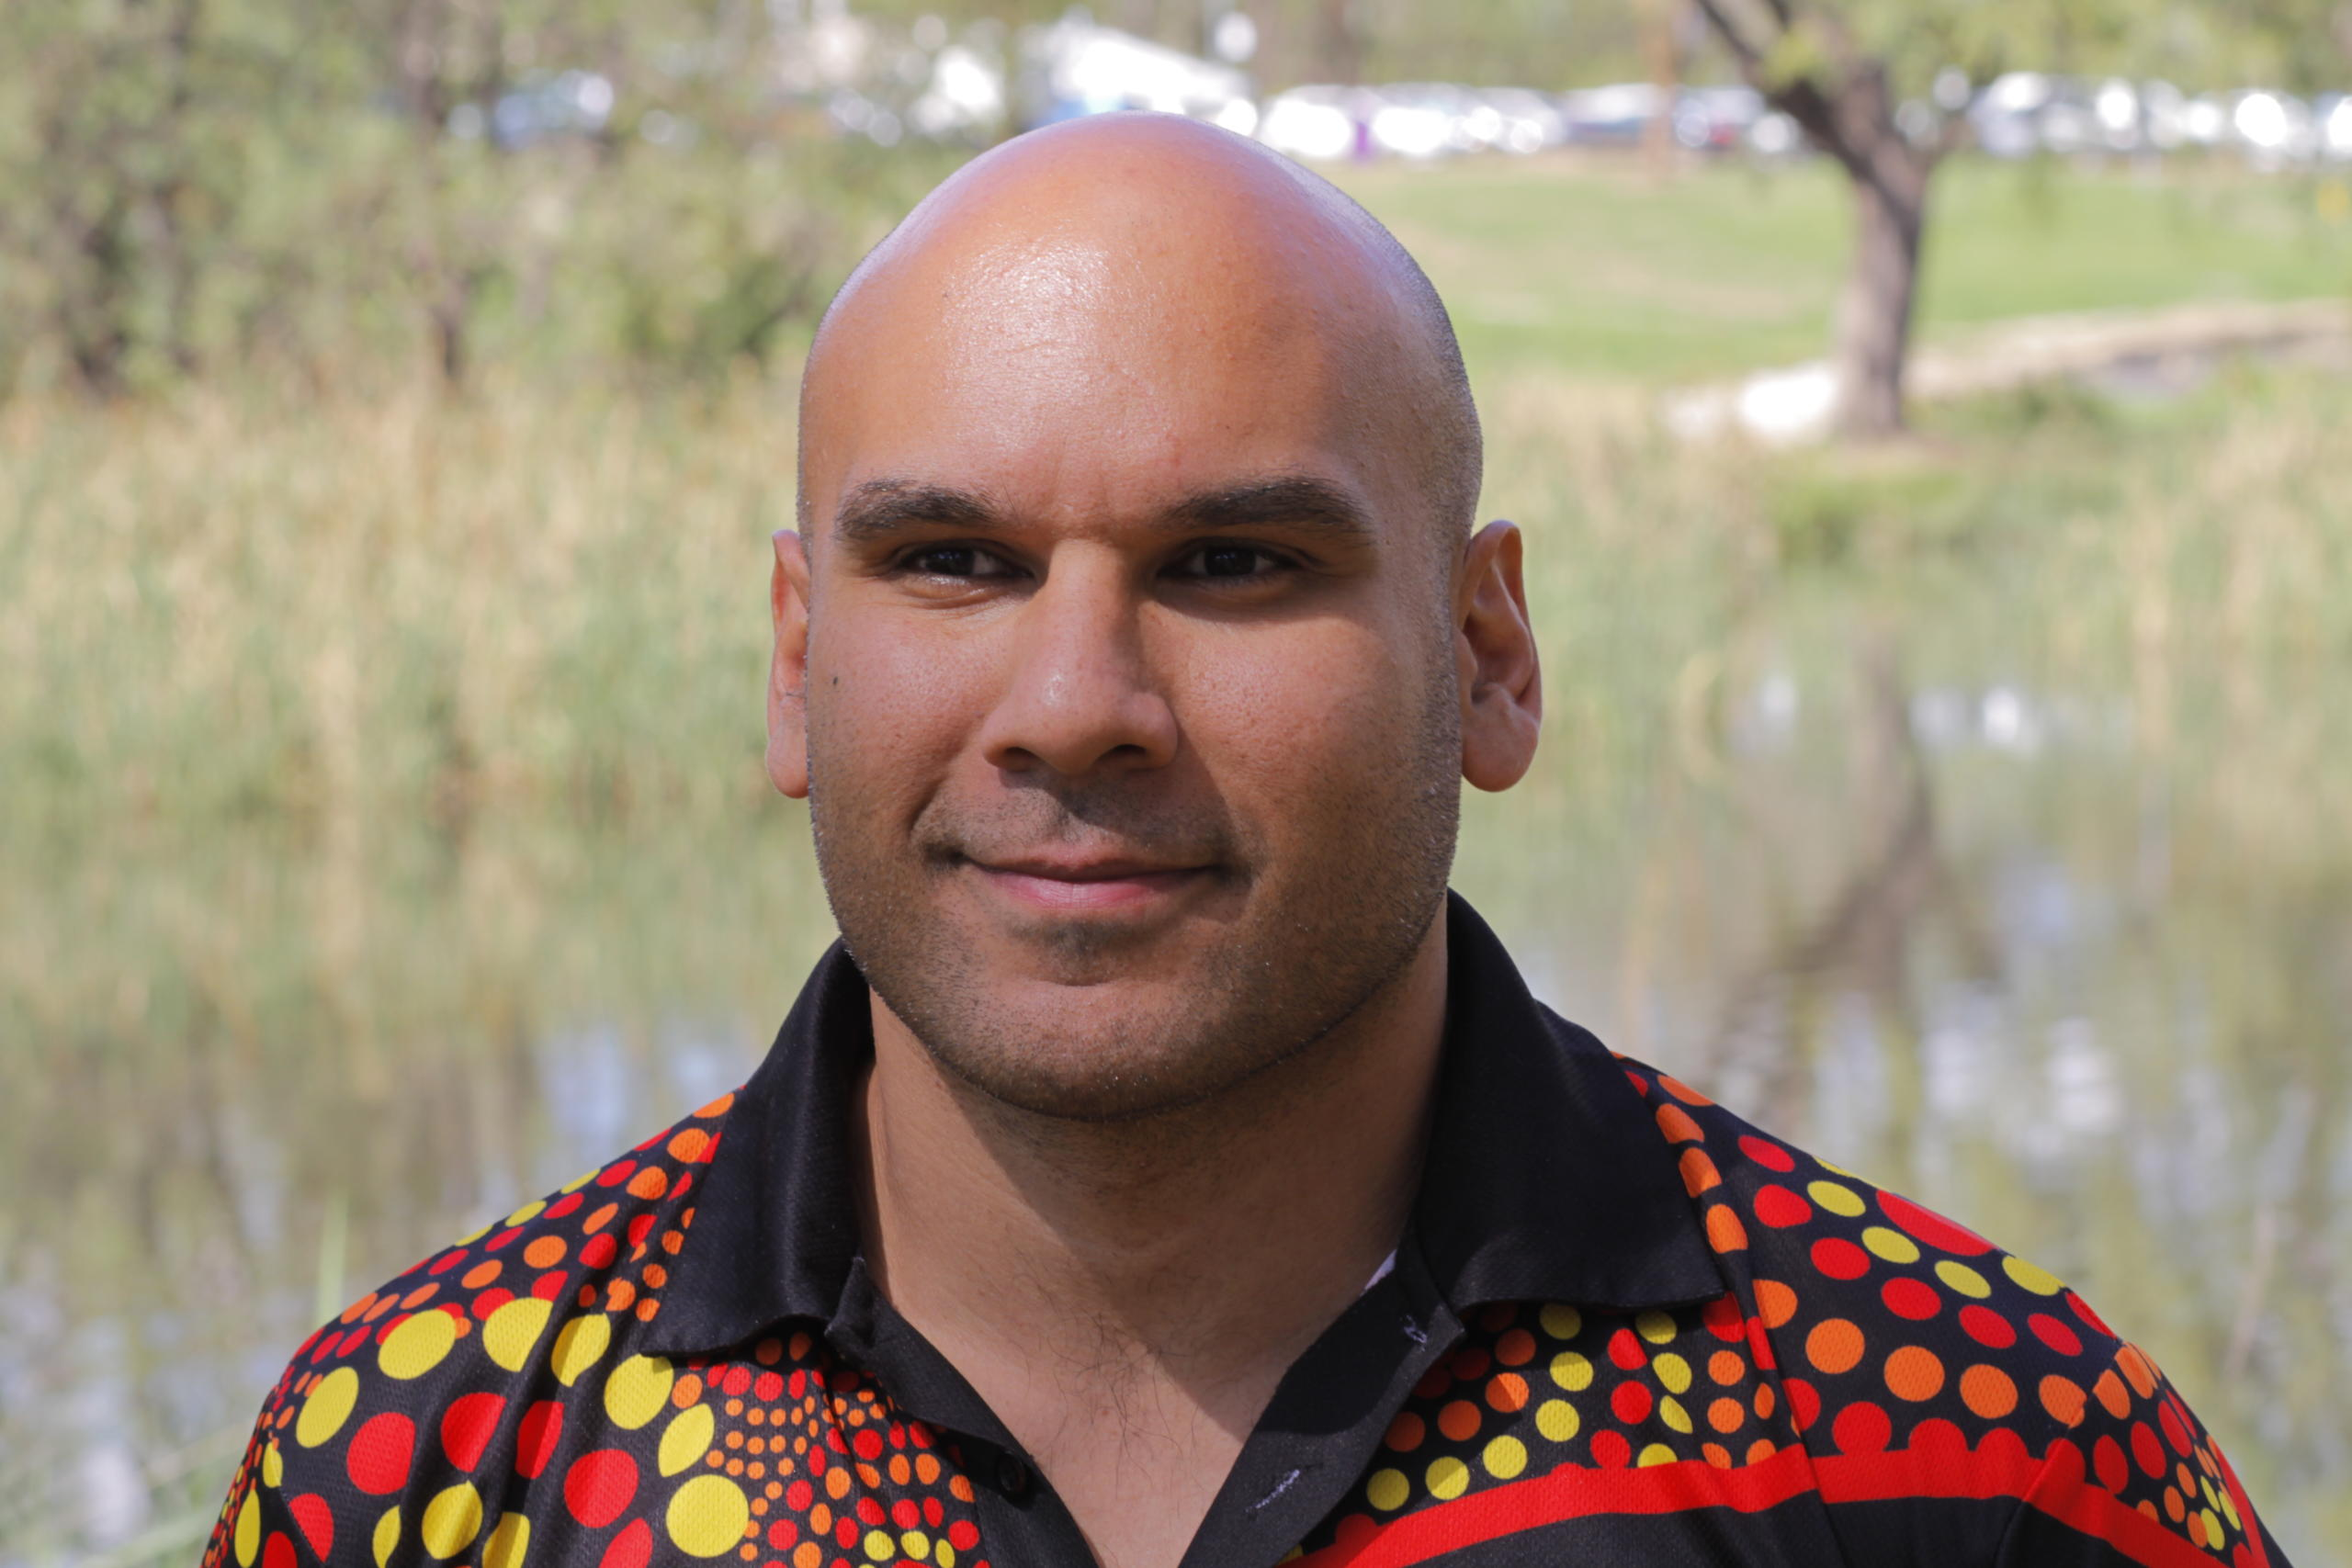 Euahlayi man Bhiamie Williamson says climate justice for First Nations people means sincere regard and resourcing for Indigenous cultural land management. Supplied: Bhiamie Williamson